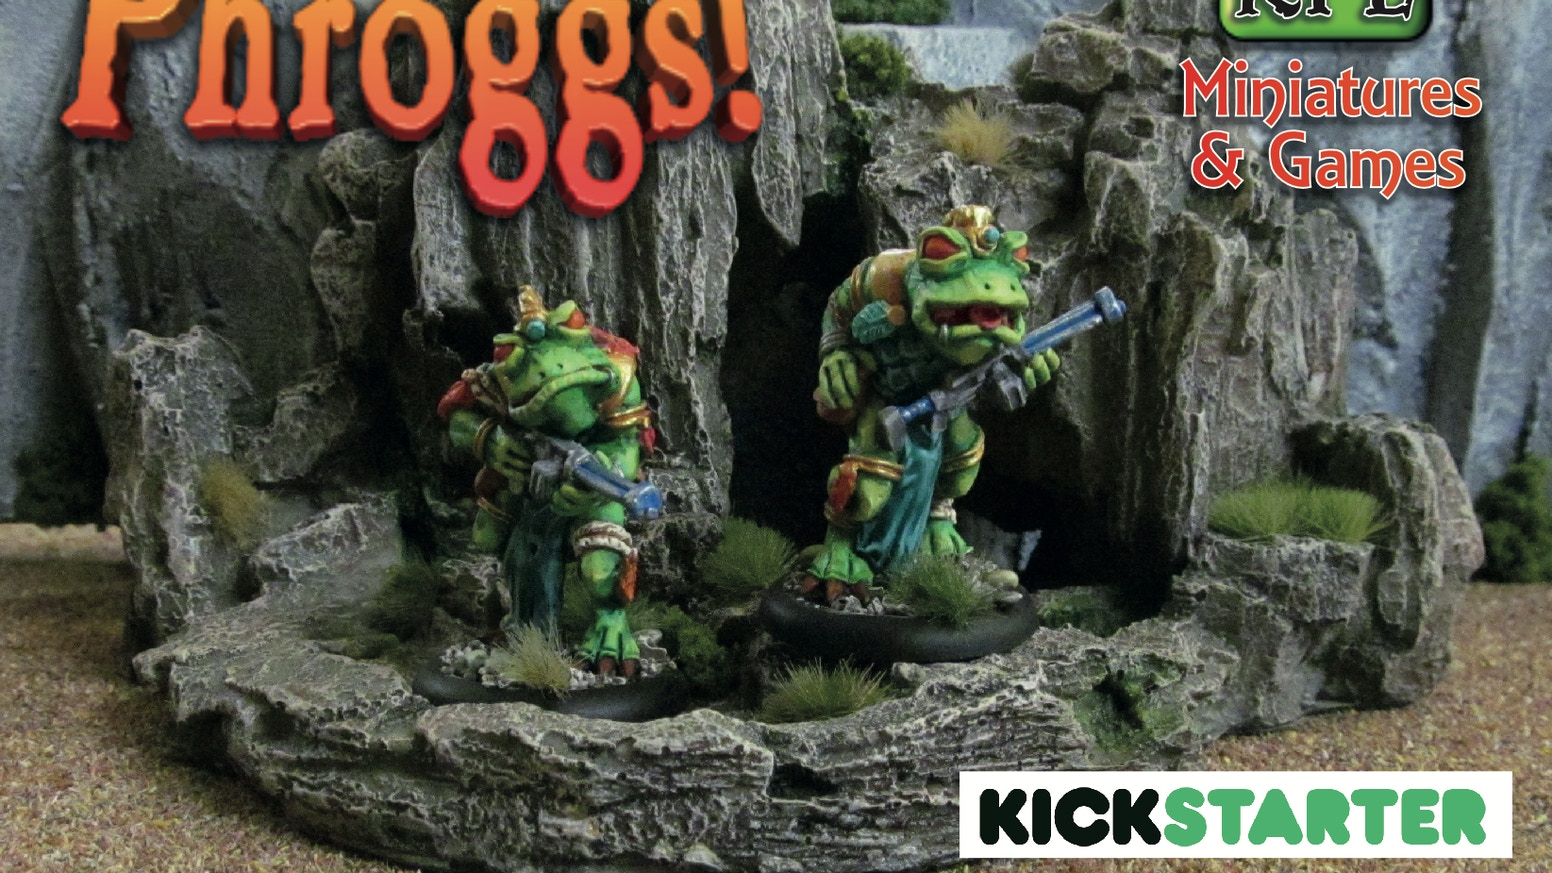 A range of sci-fi amphibian miniatures with an old school aesthetic in 28mm for tabletop wargaming